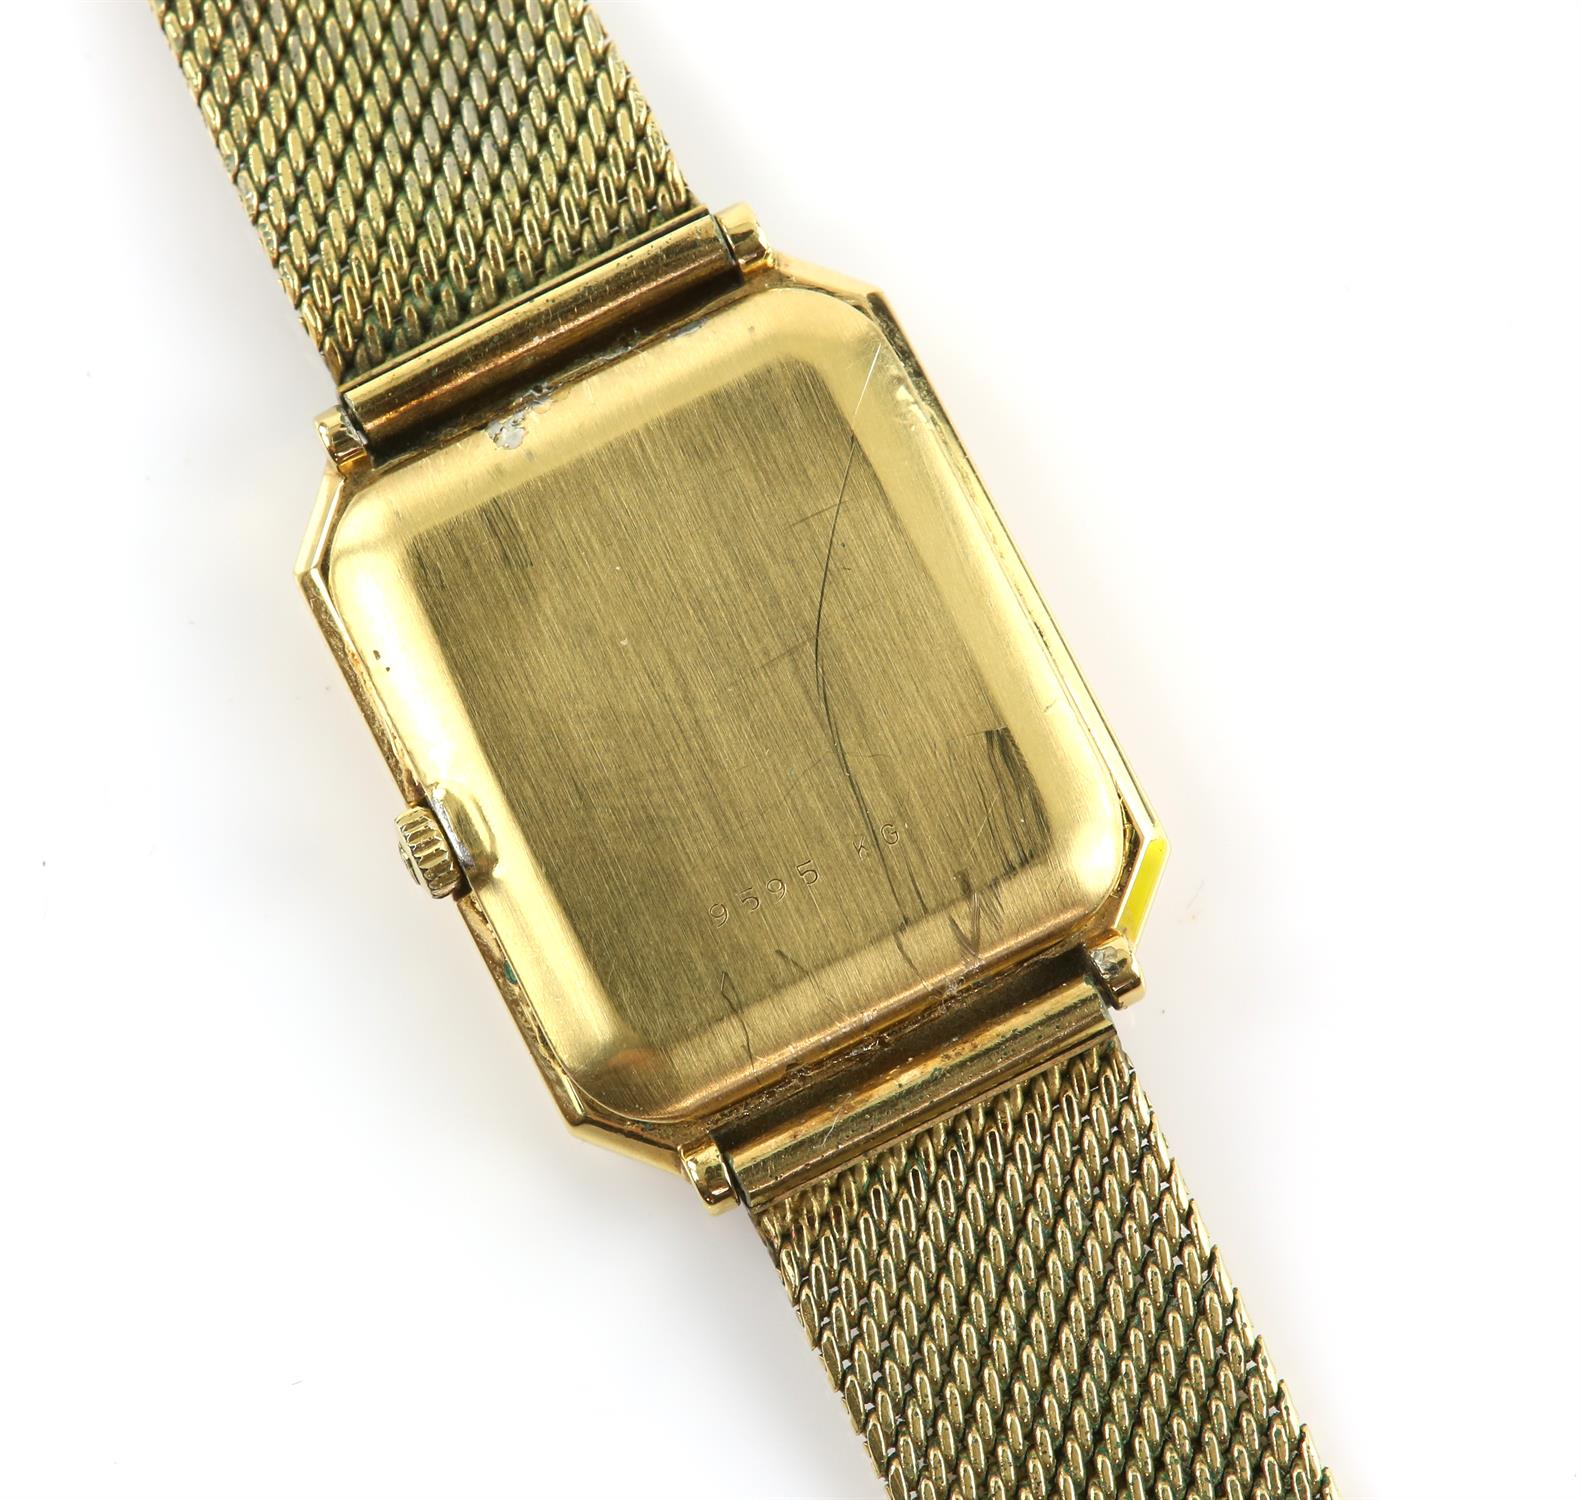 Girad-Perregaux A gentleman's wrist watch, the rectangular signed brushed gold signed dial case - Image 2 of 2